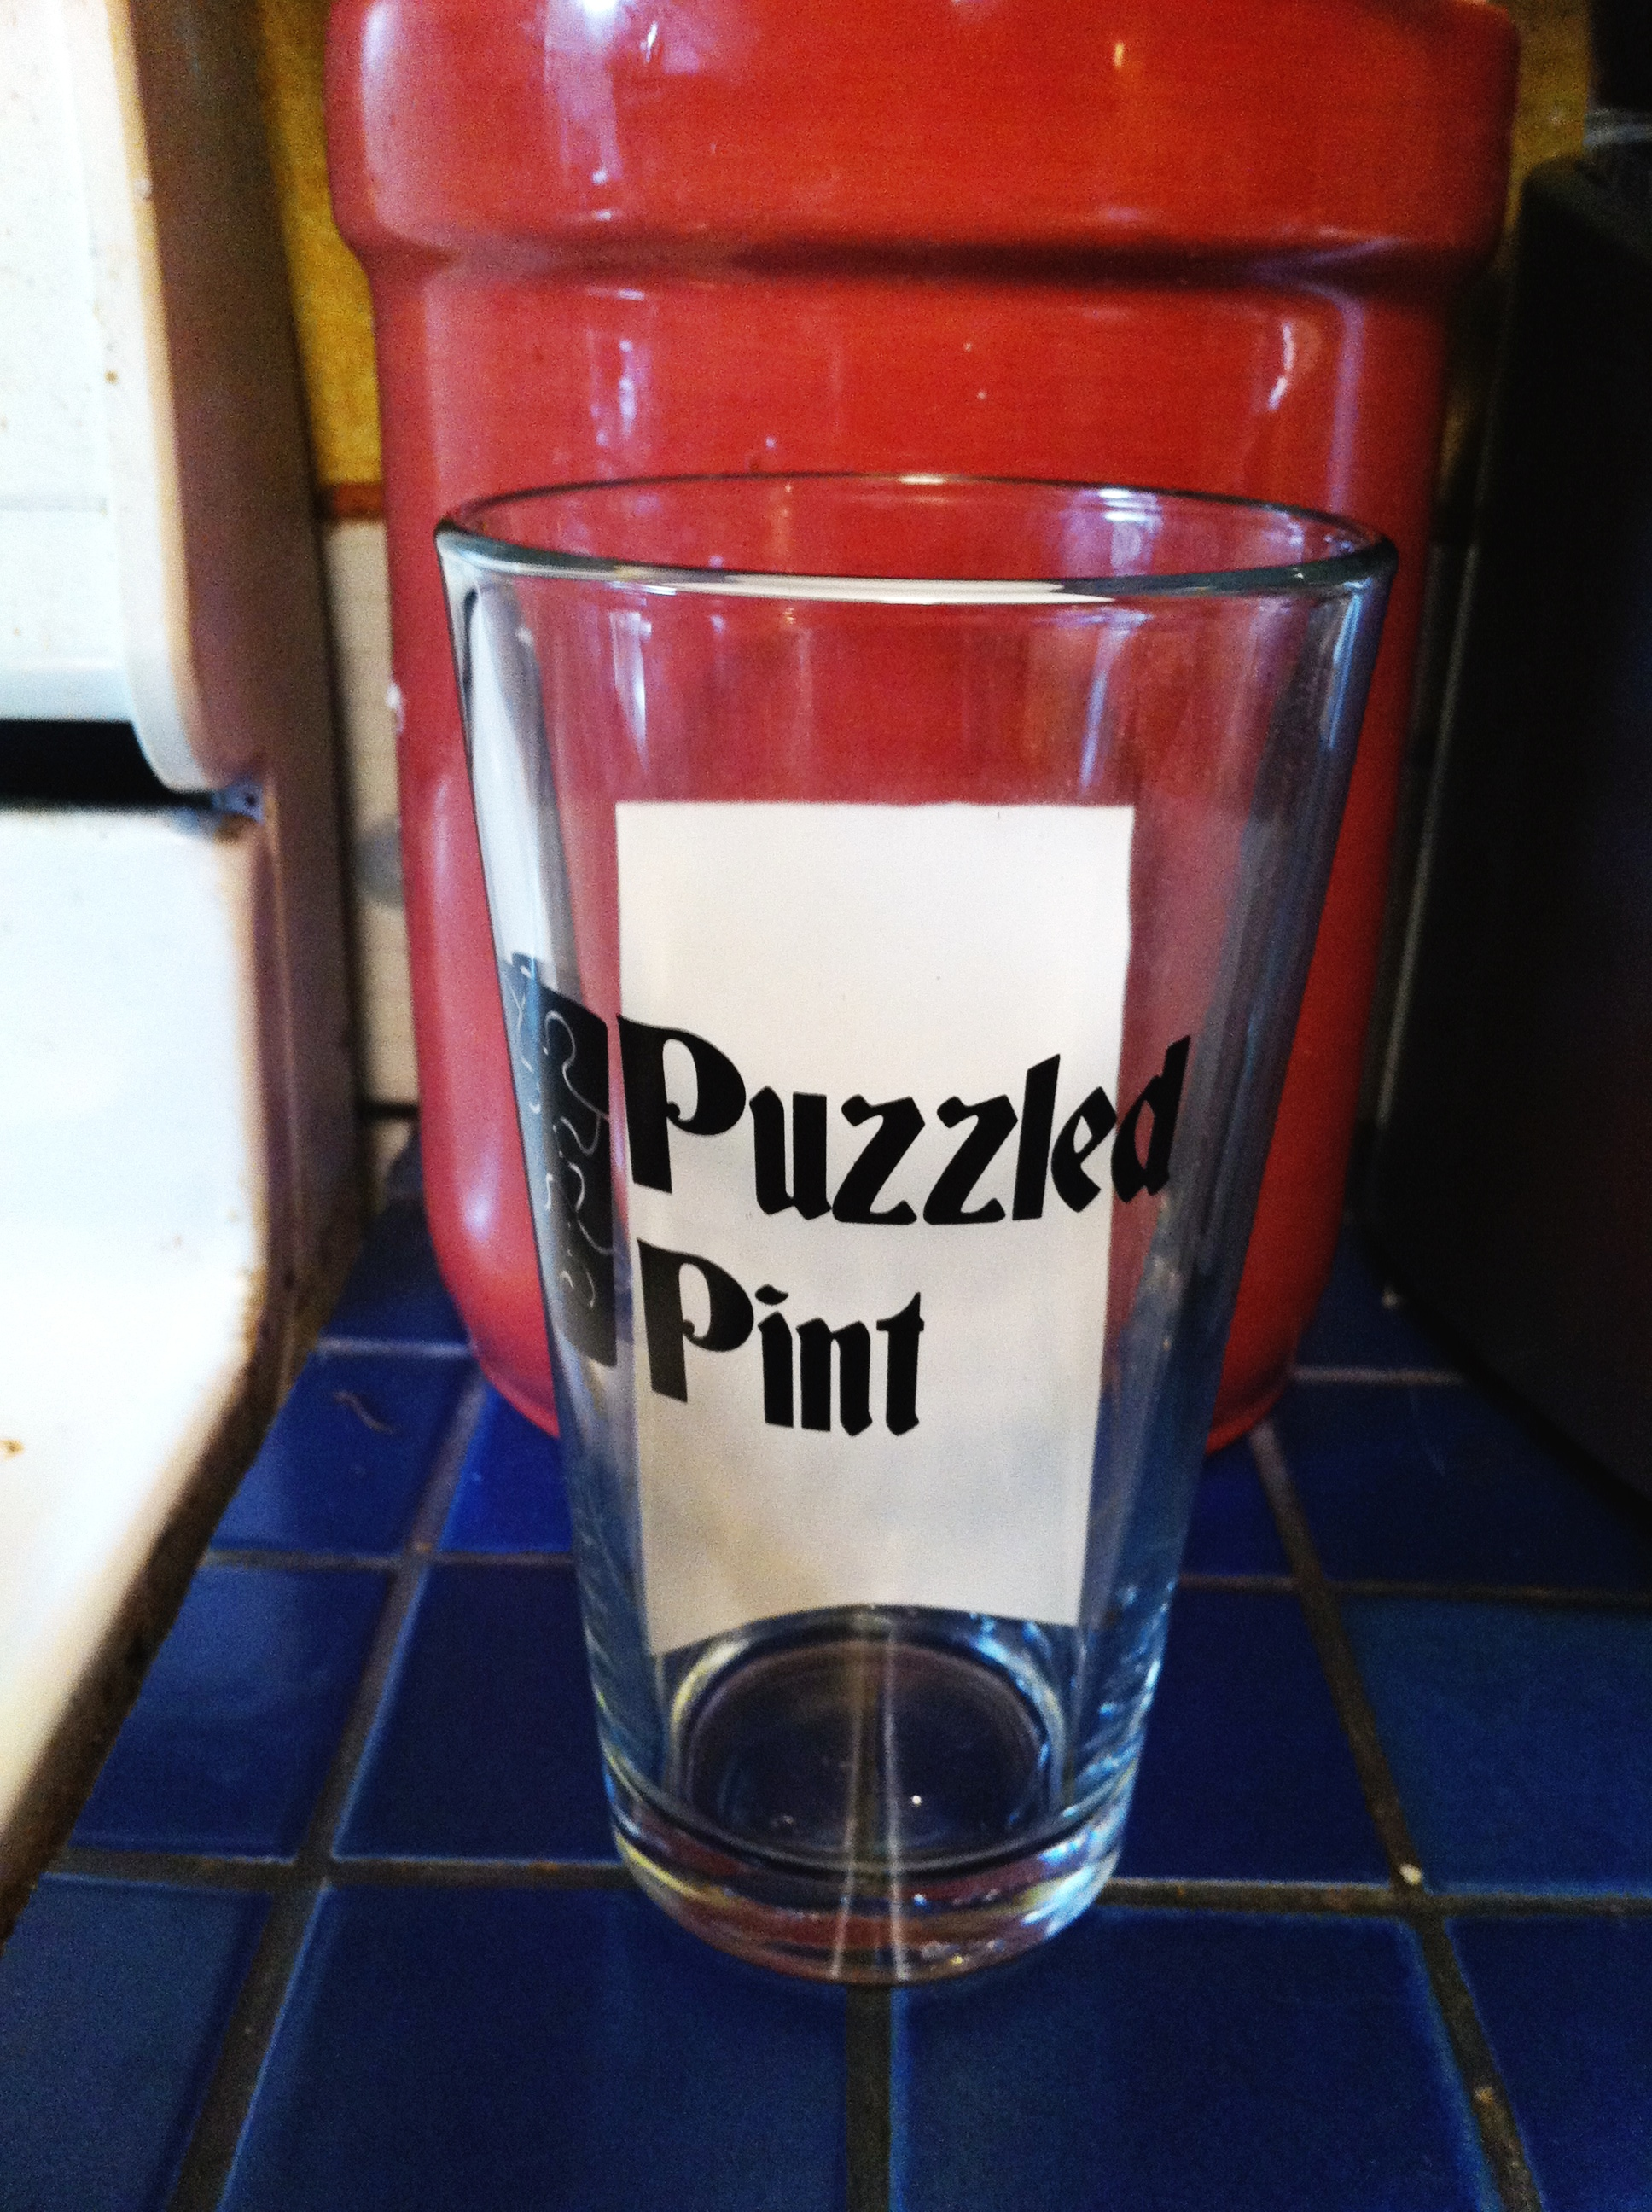 Puzzled Pintglass